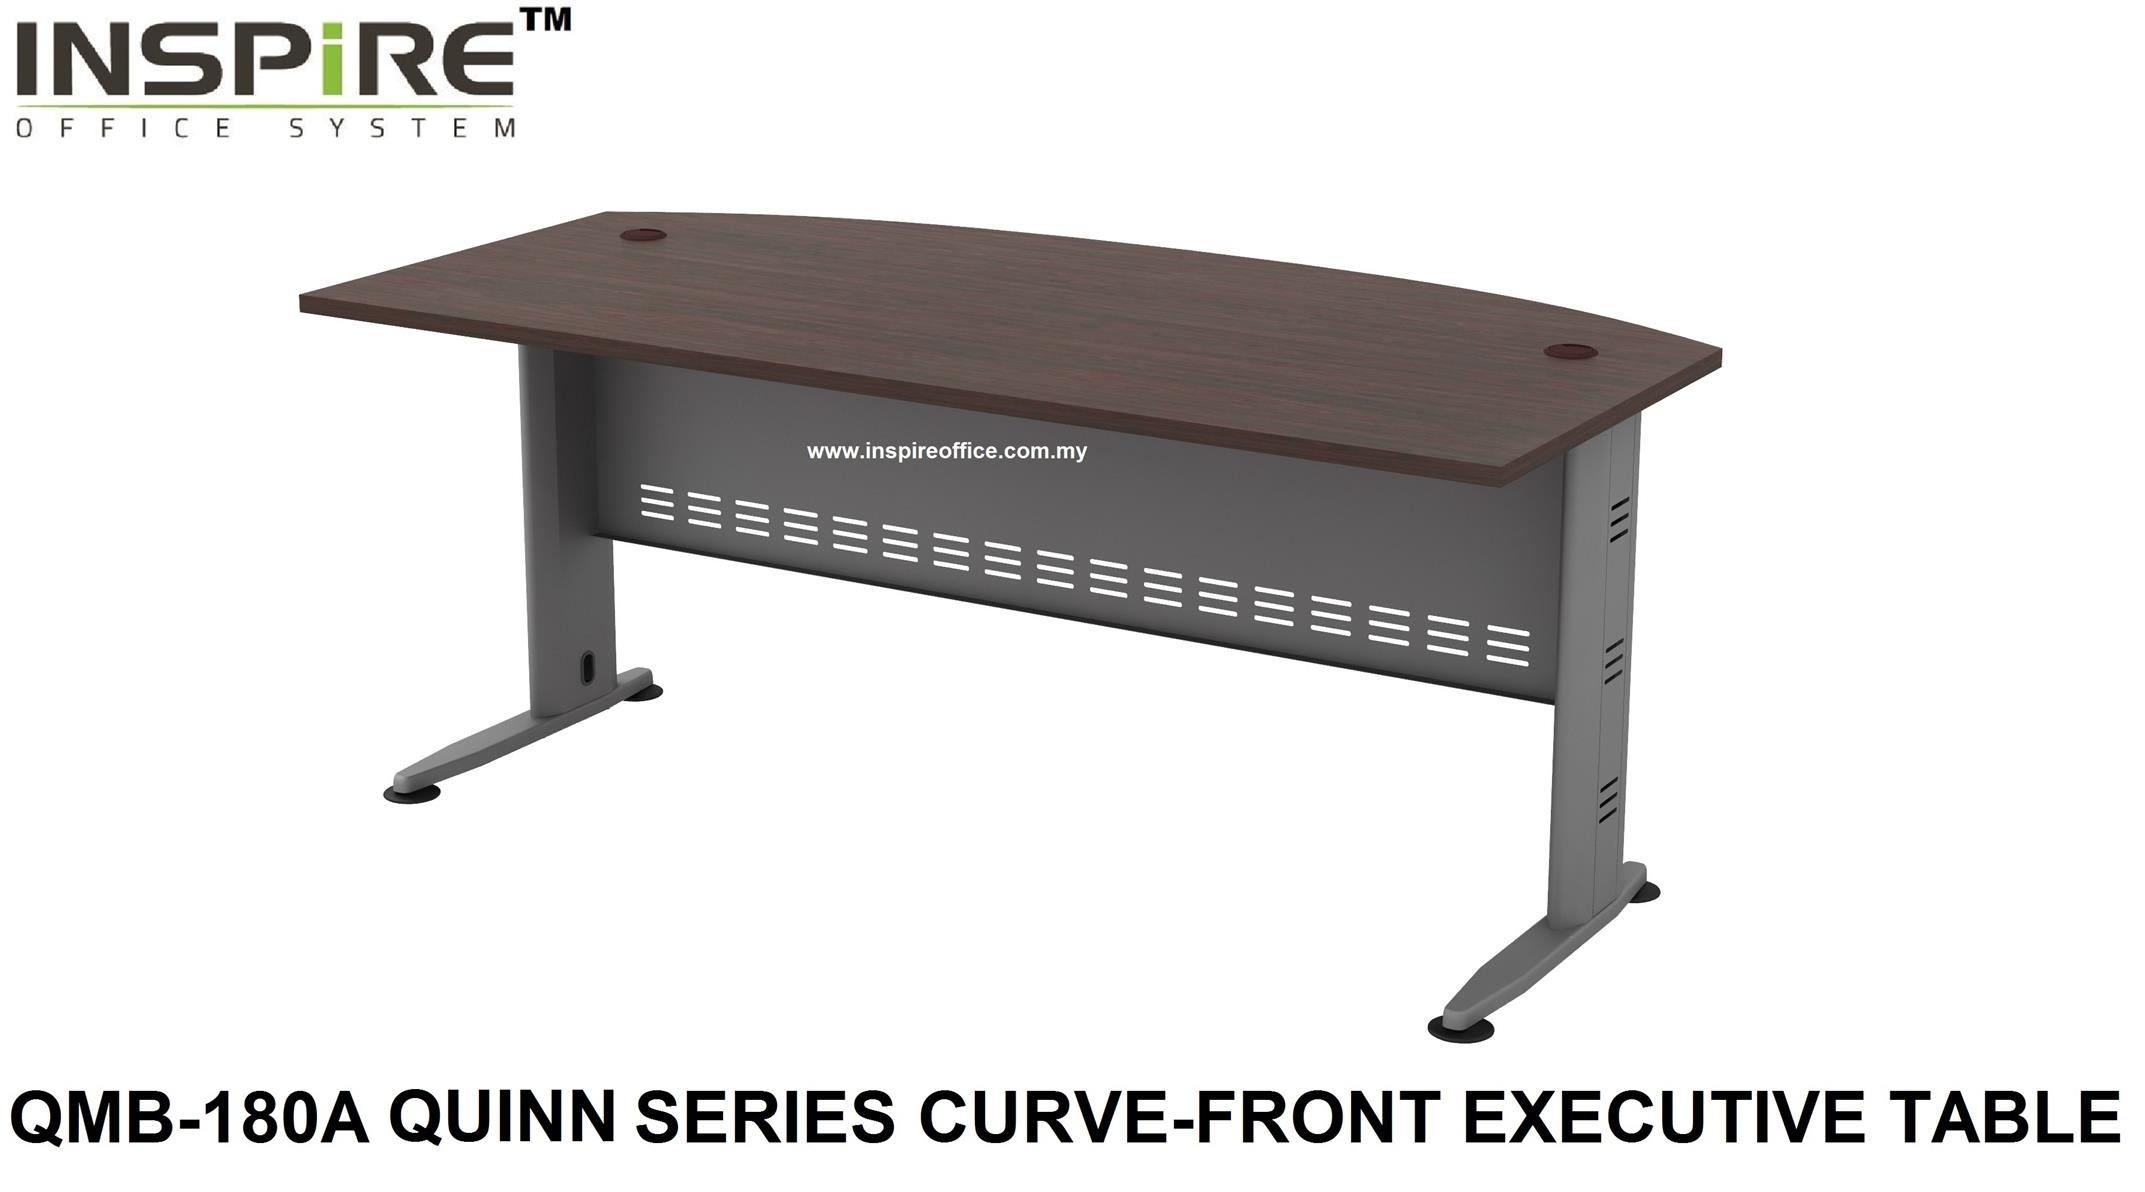 QMB-180A QUINN SERIES CURVE-FRONT EXECUTIVE TABLE